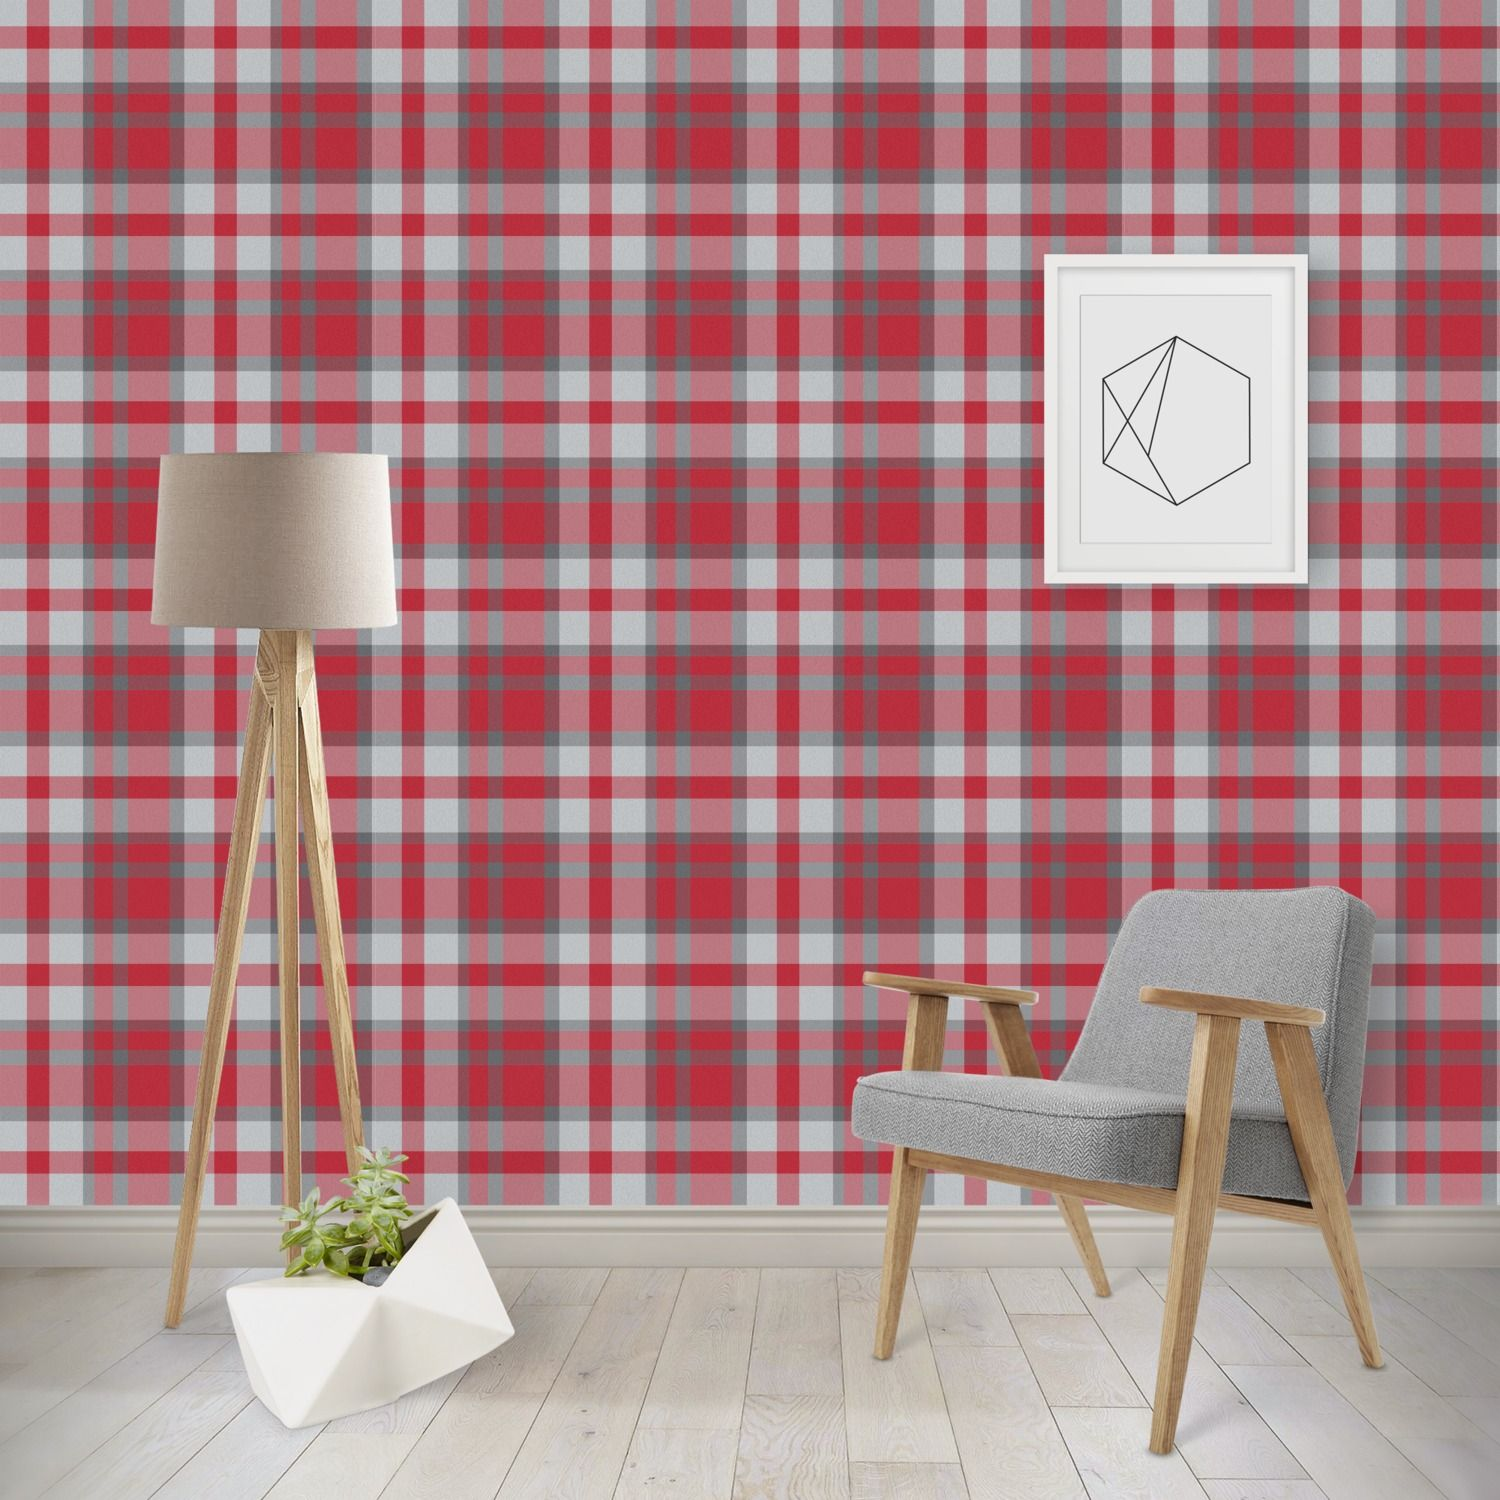 Red & Gray Plaid Wallpaper & Surface Covering (Peel